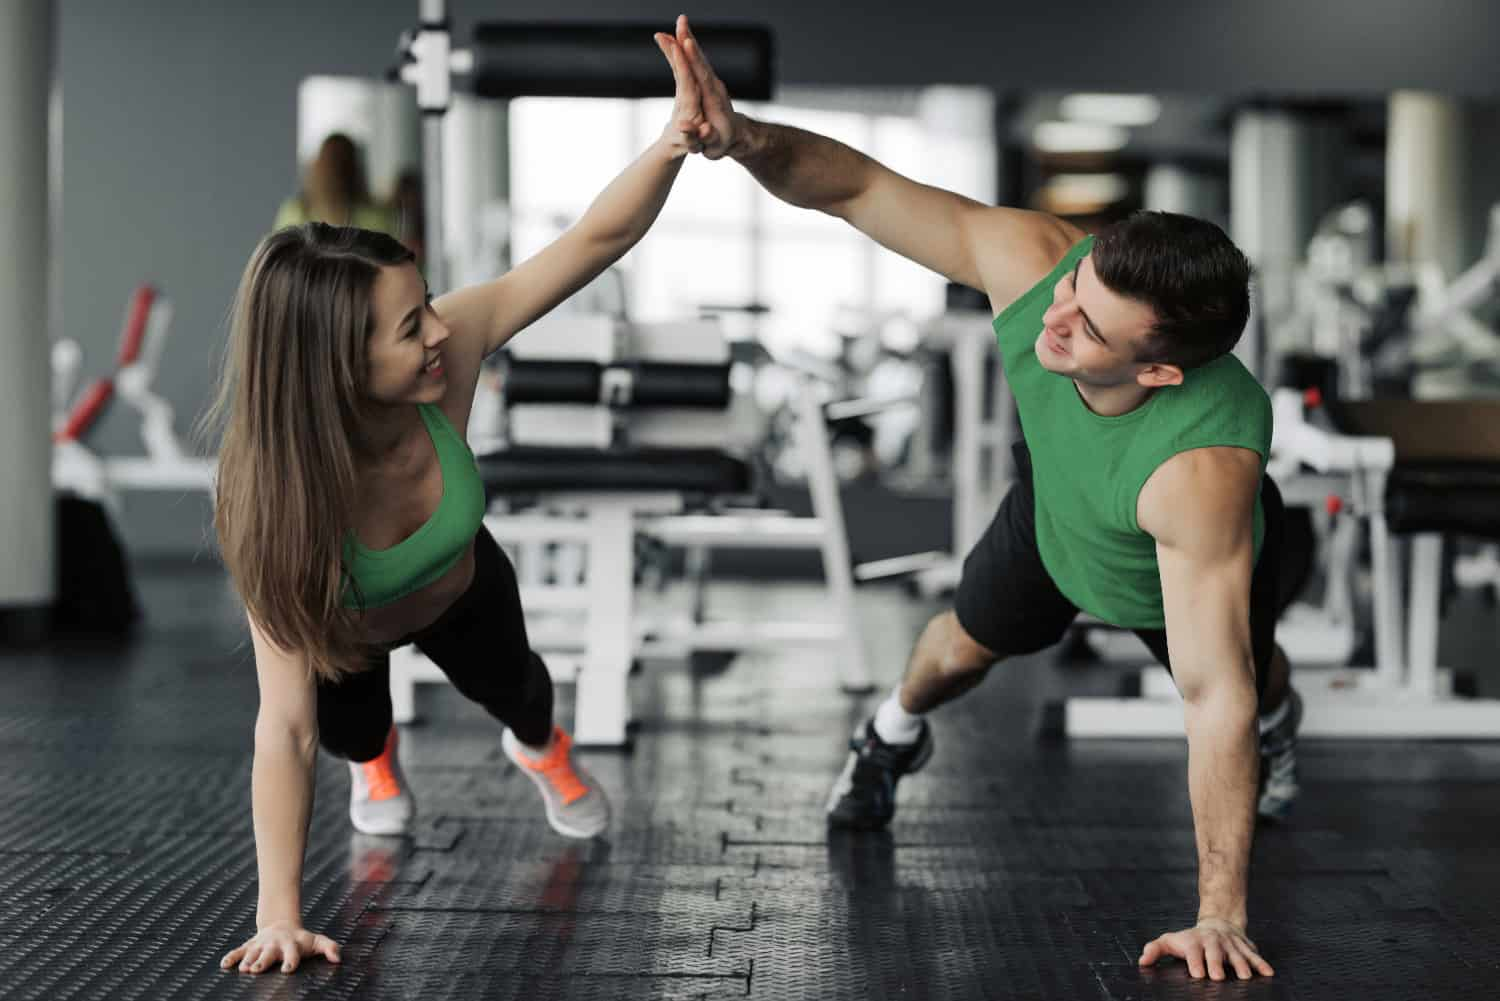 gym goers high-fiving - digital marketing for gyms